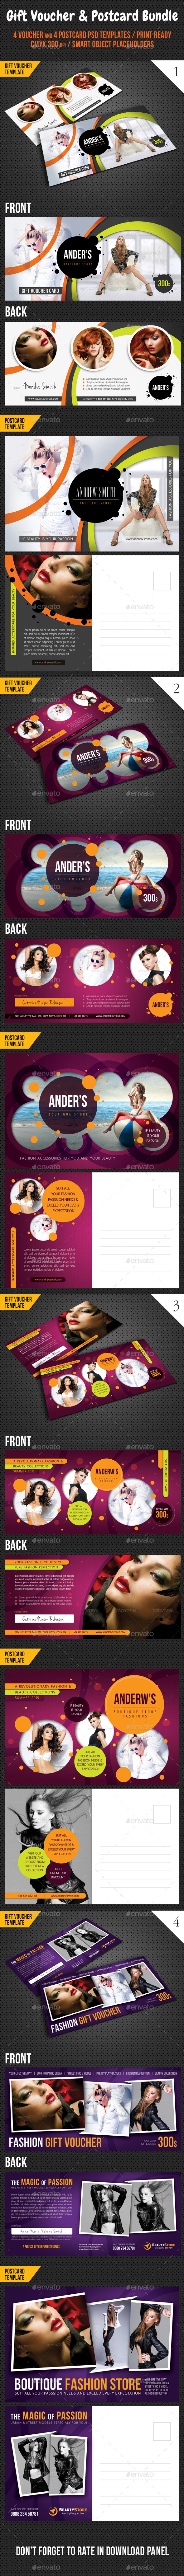 GraphicRiver 8 in 1 Fashion Gift Voucher and Postcard Bundle 10224341